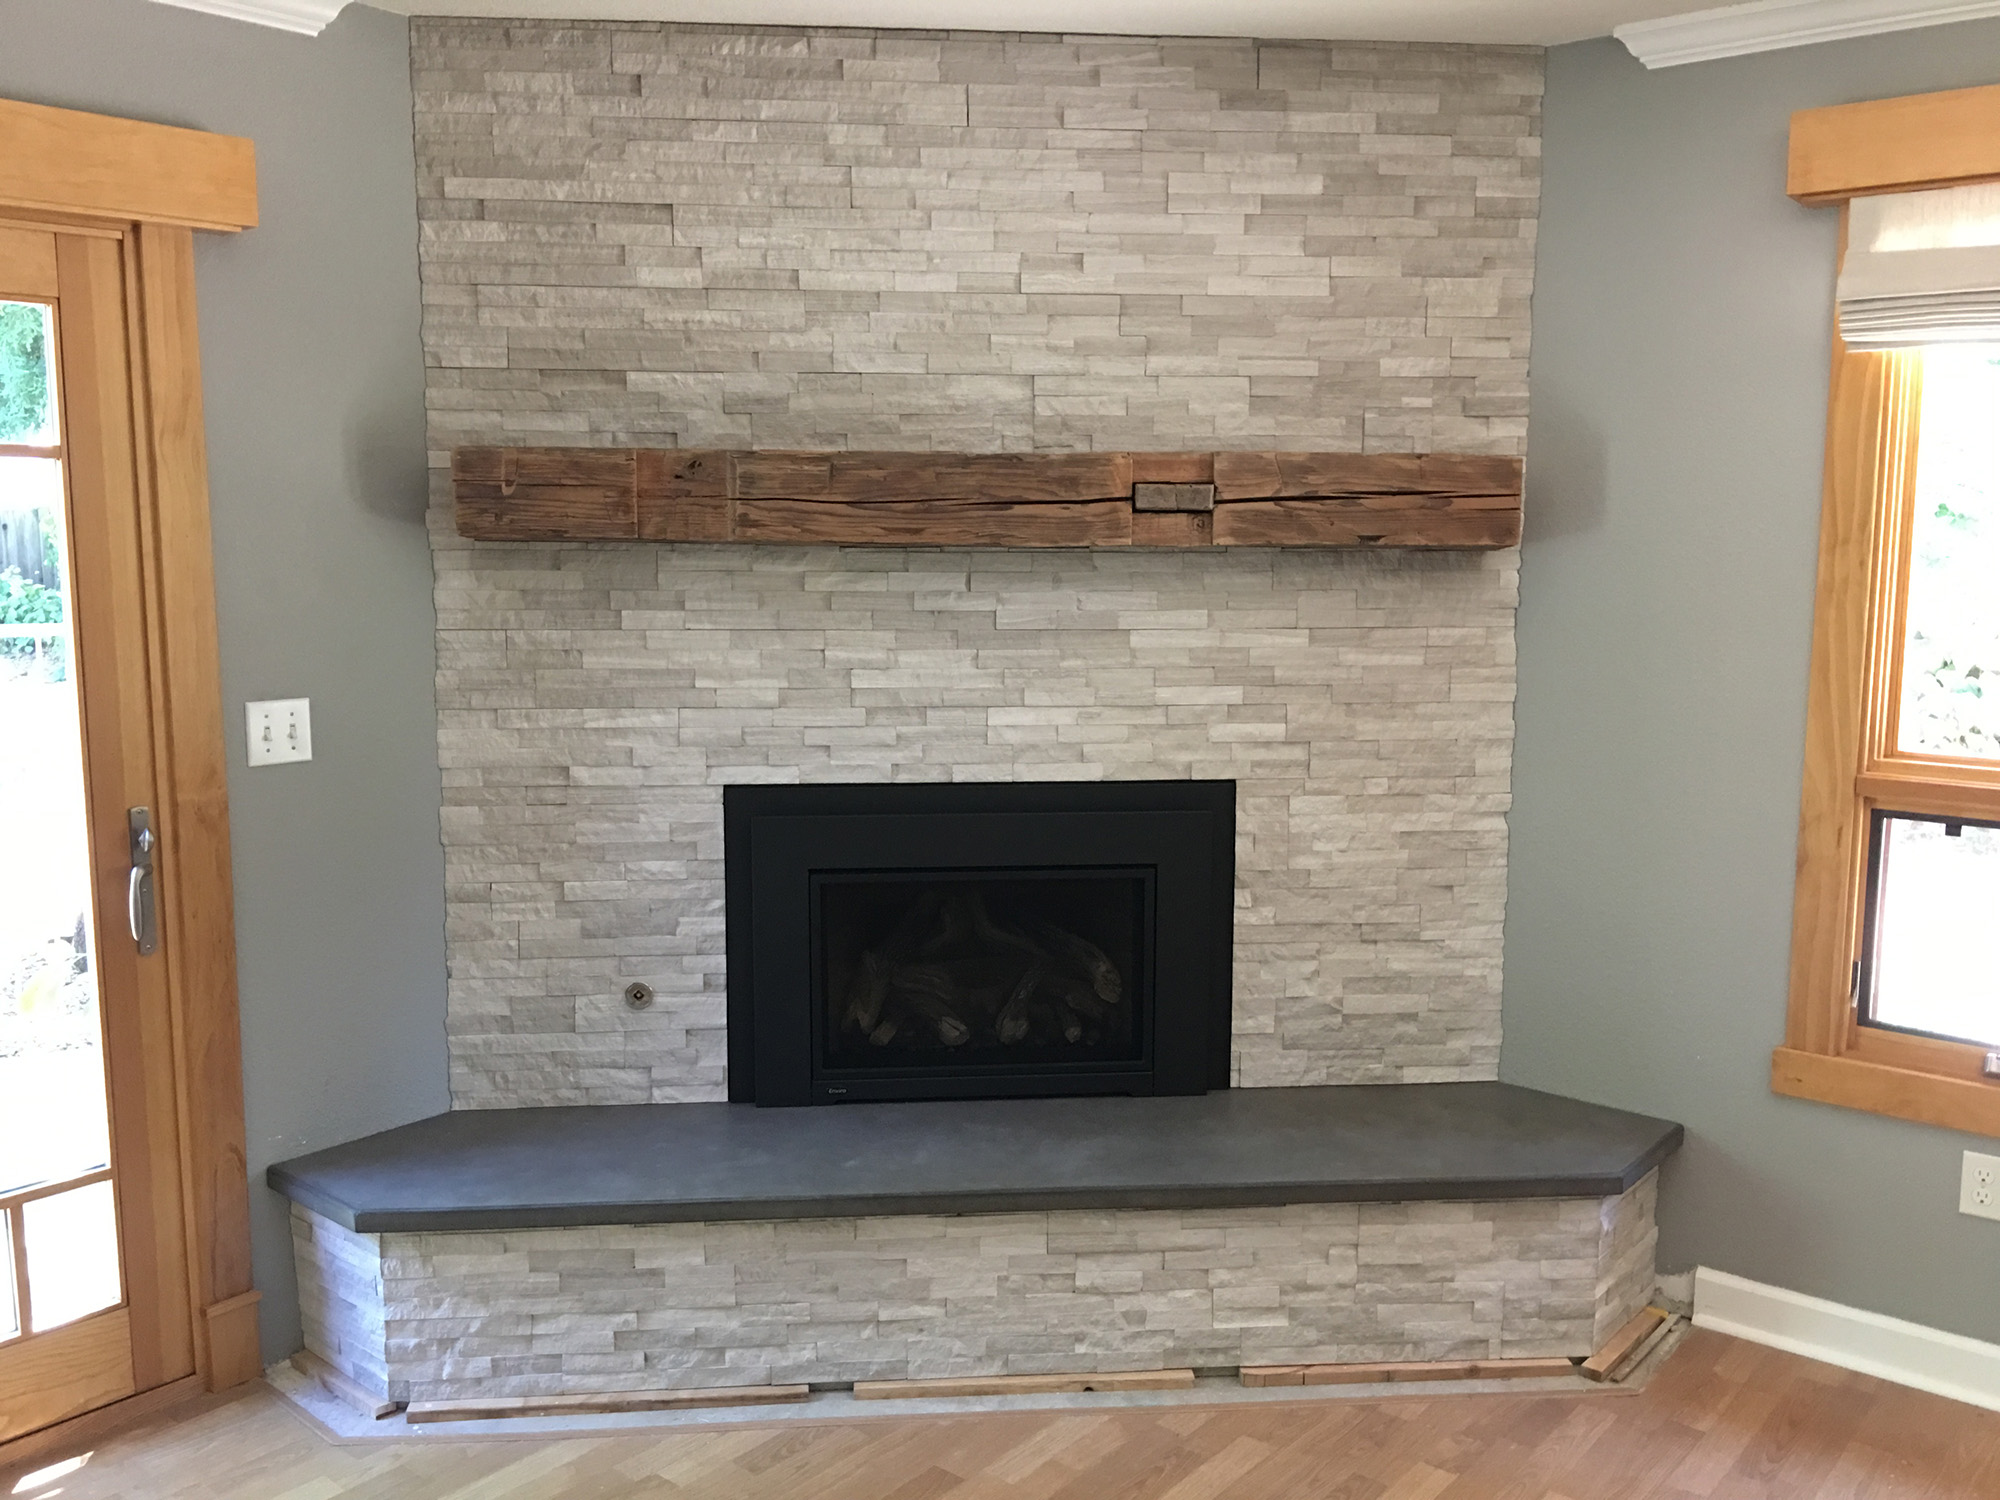 Concrete Fireplaces And Hearths Lawler Construction